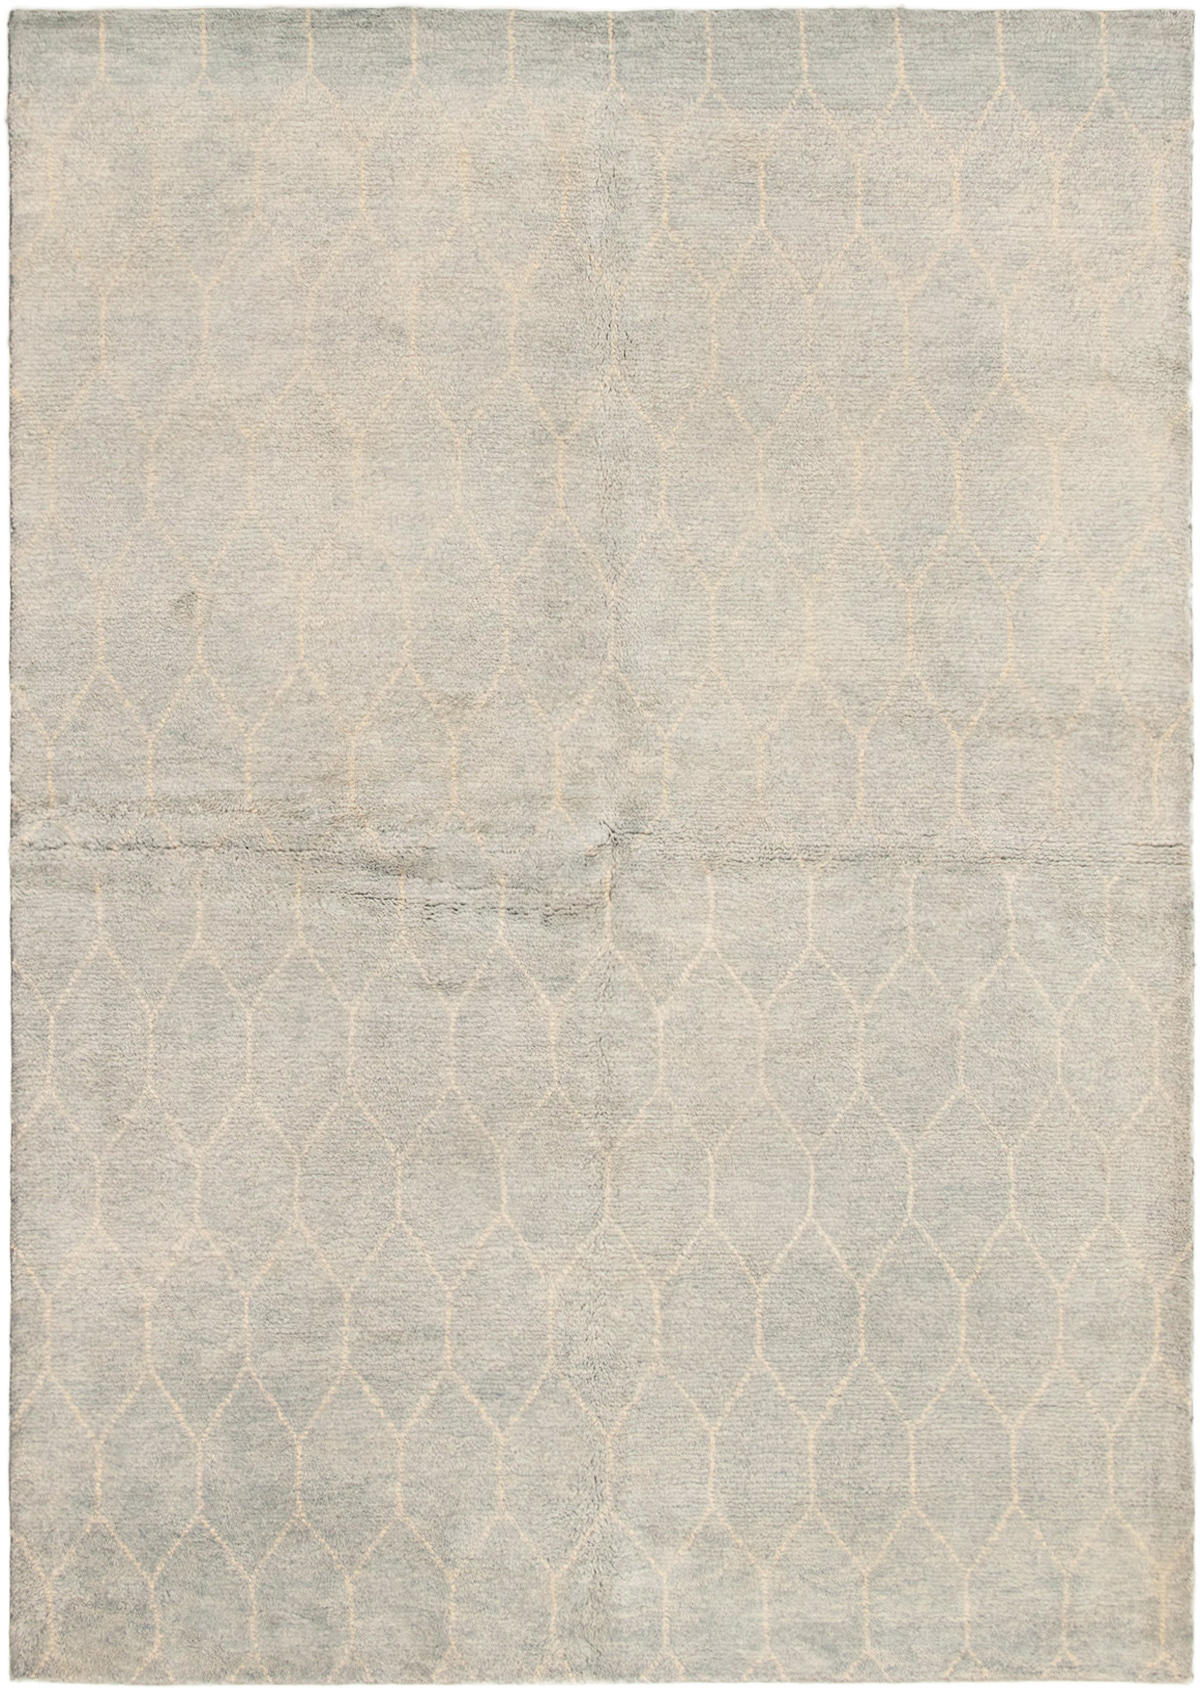 """Hand-knotted Arlequin Light Blue  Wool Rug 6'3"""" x 8'10"""" Size: 6'3"""" x 8'10"""""""